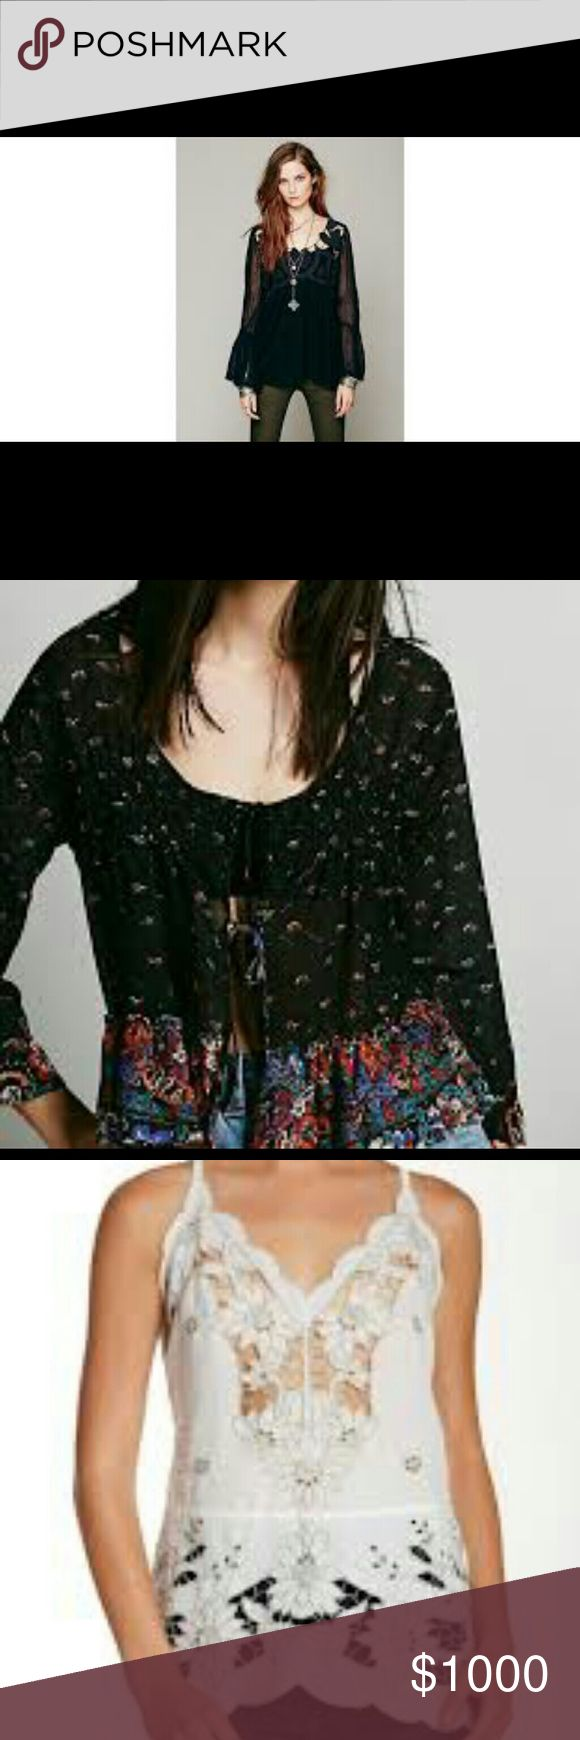 ISO !!! Not For Sale!!! In search of these 3 items by Free People.   1.  Cutwork, pieced tunic in black, sizes S, M, or L.   2.  Border print  tie front top, black combo, sizes XS,  S,  or M.  3.  Listen To The Music, any color, size L.   Reasonable asking prices only,  please.   Thank you,  ladies! Free People Tops